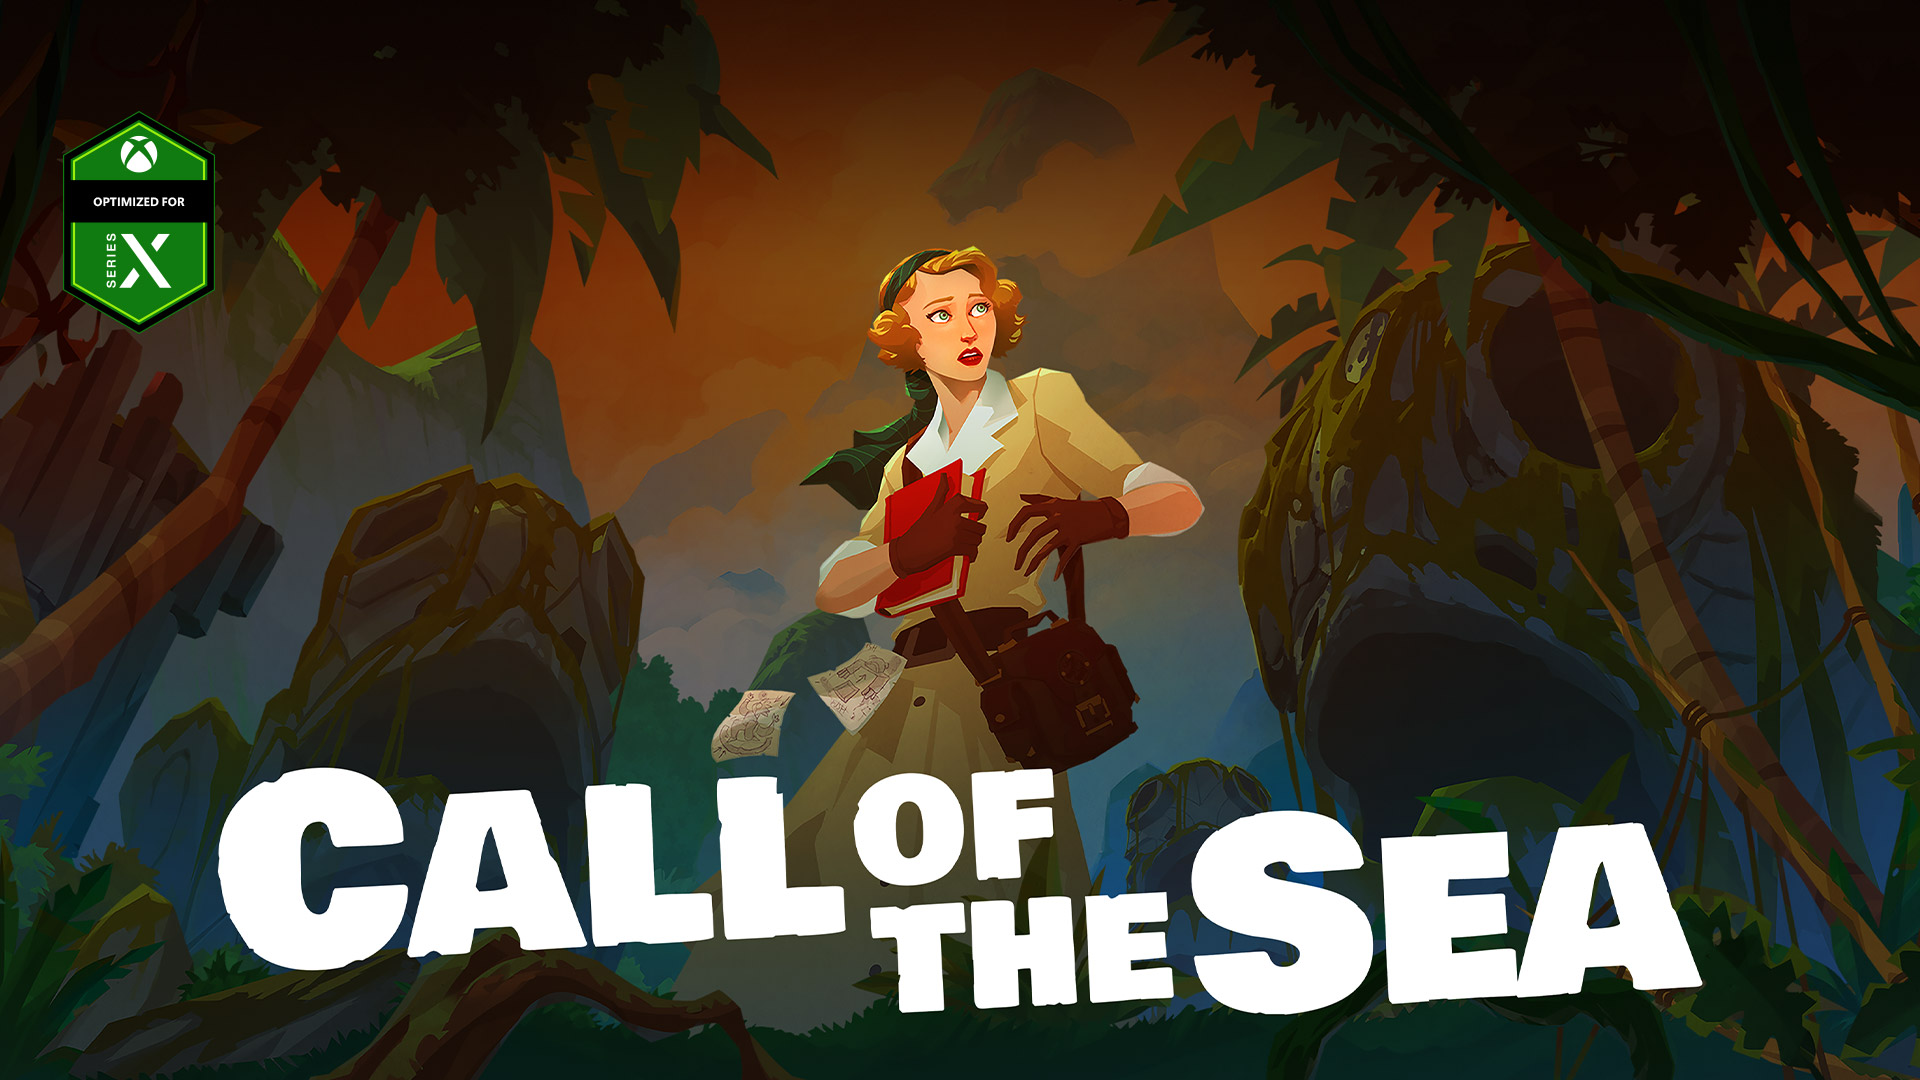 Optimized for series X logo, Call of the Sea, Norah in a jungle